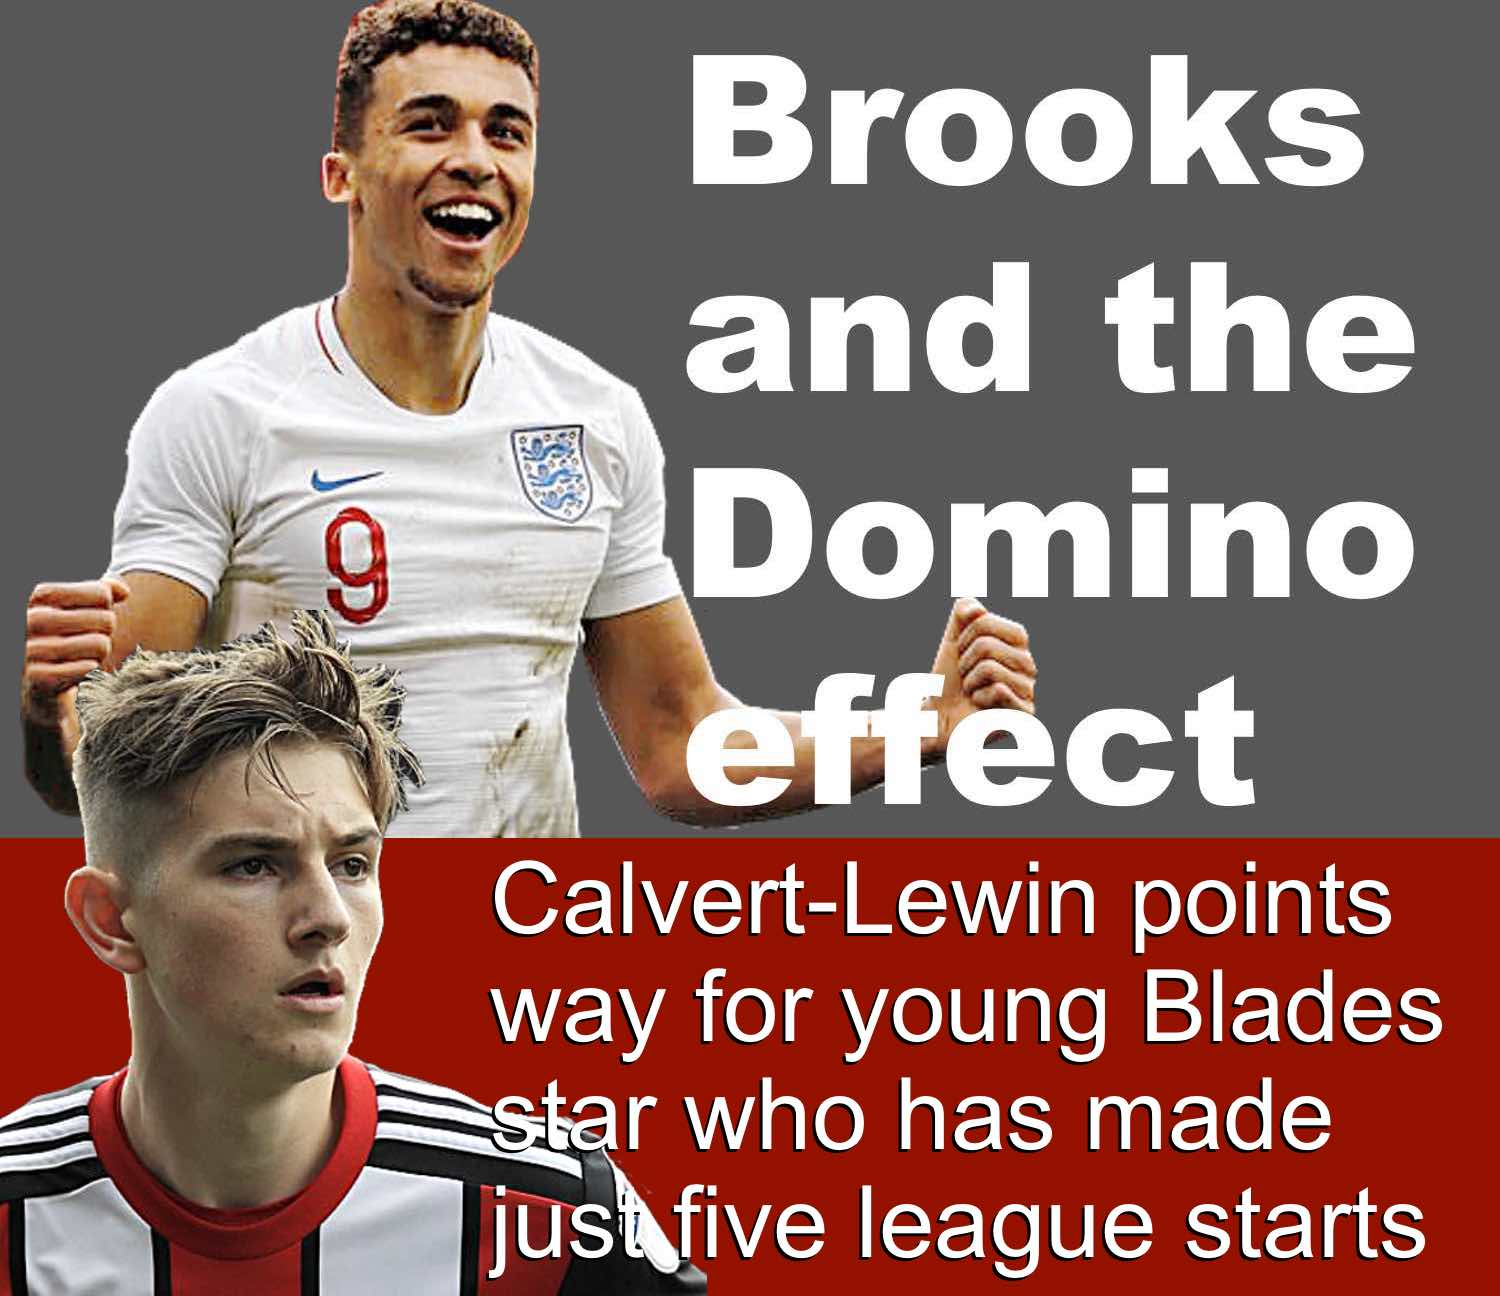 Ex-Blade Dominic Calvert-Lewin's top flight experience adds incentive for Blades young star David Brooks to leave Bramall Lane in the summer